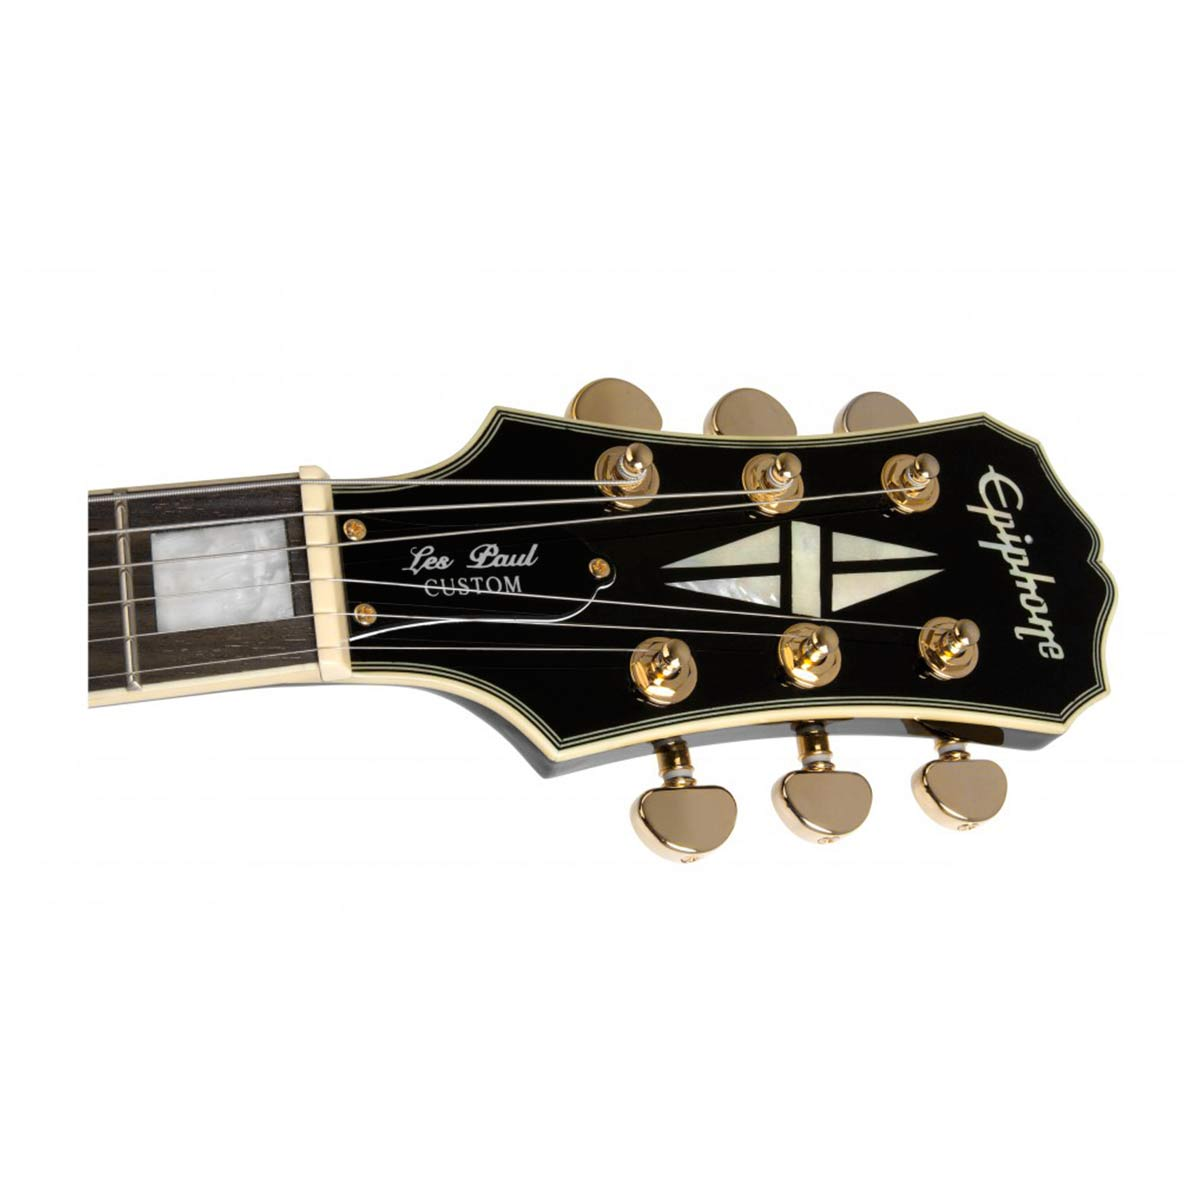 Guitarra Les Paul Custom Black Beauty - Epiphone